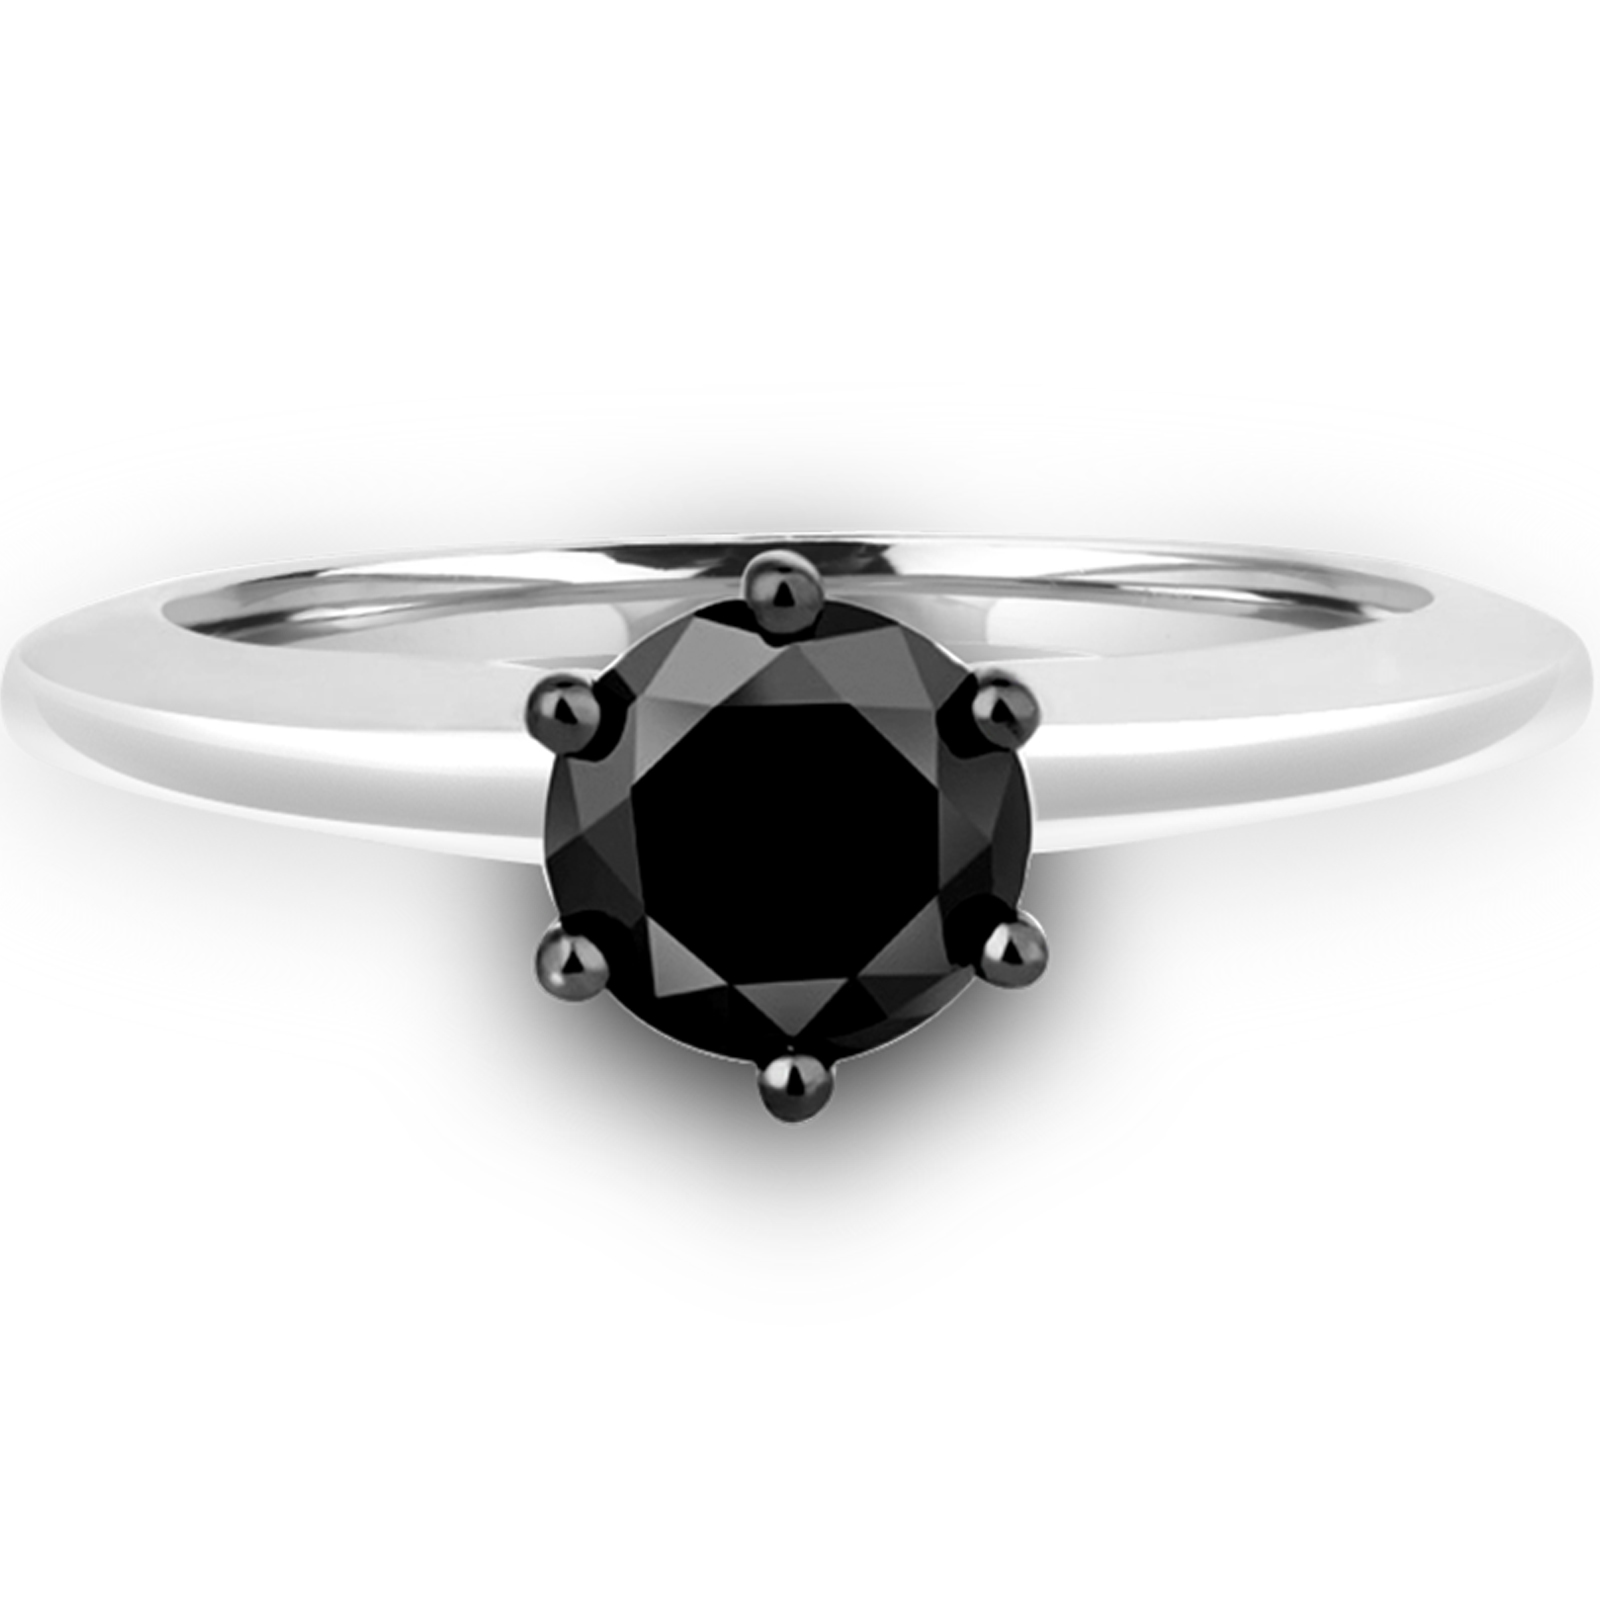 4/5 CT Round Black Diamond Solitaire Engagement Ring in 10K White Gold (MDR130024) - image 1 de 2